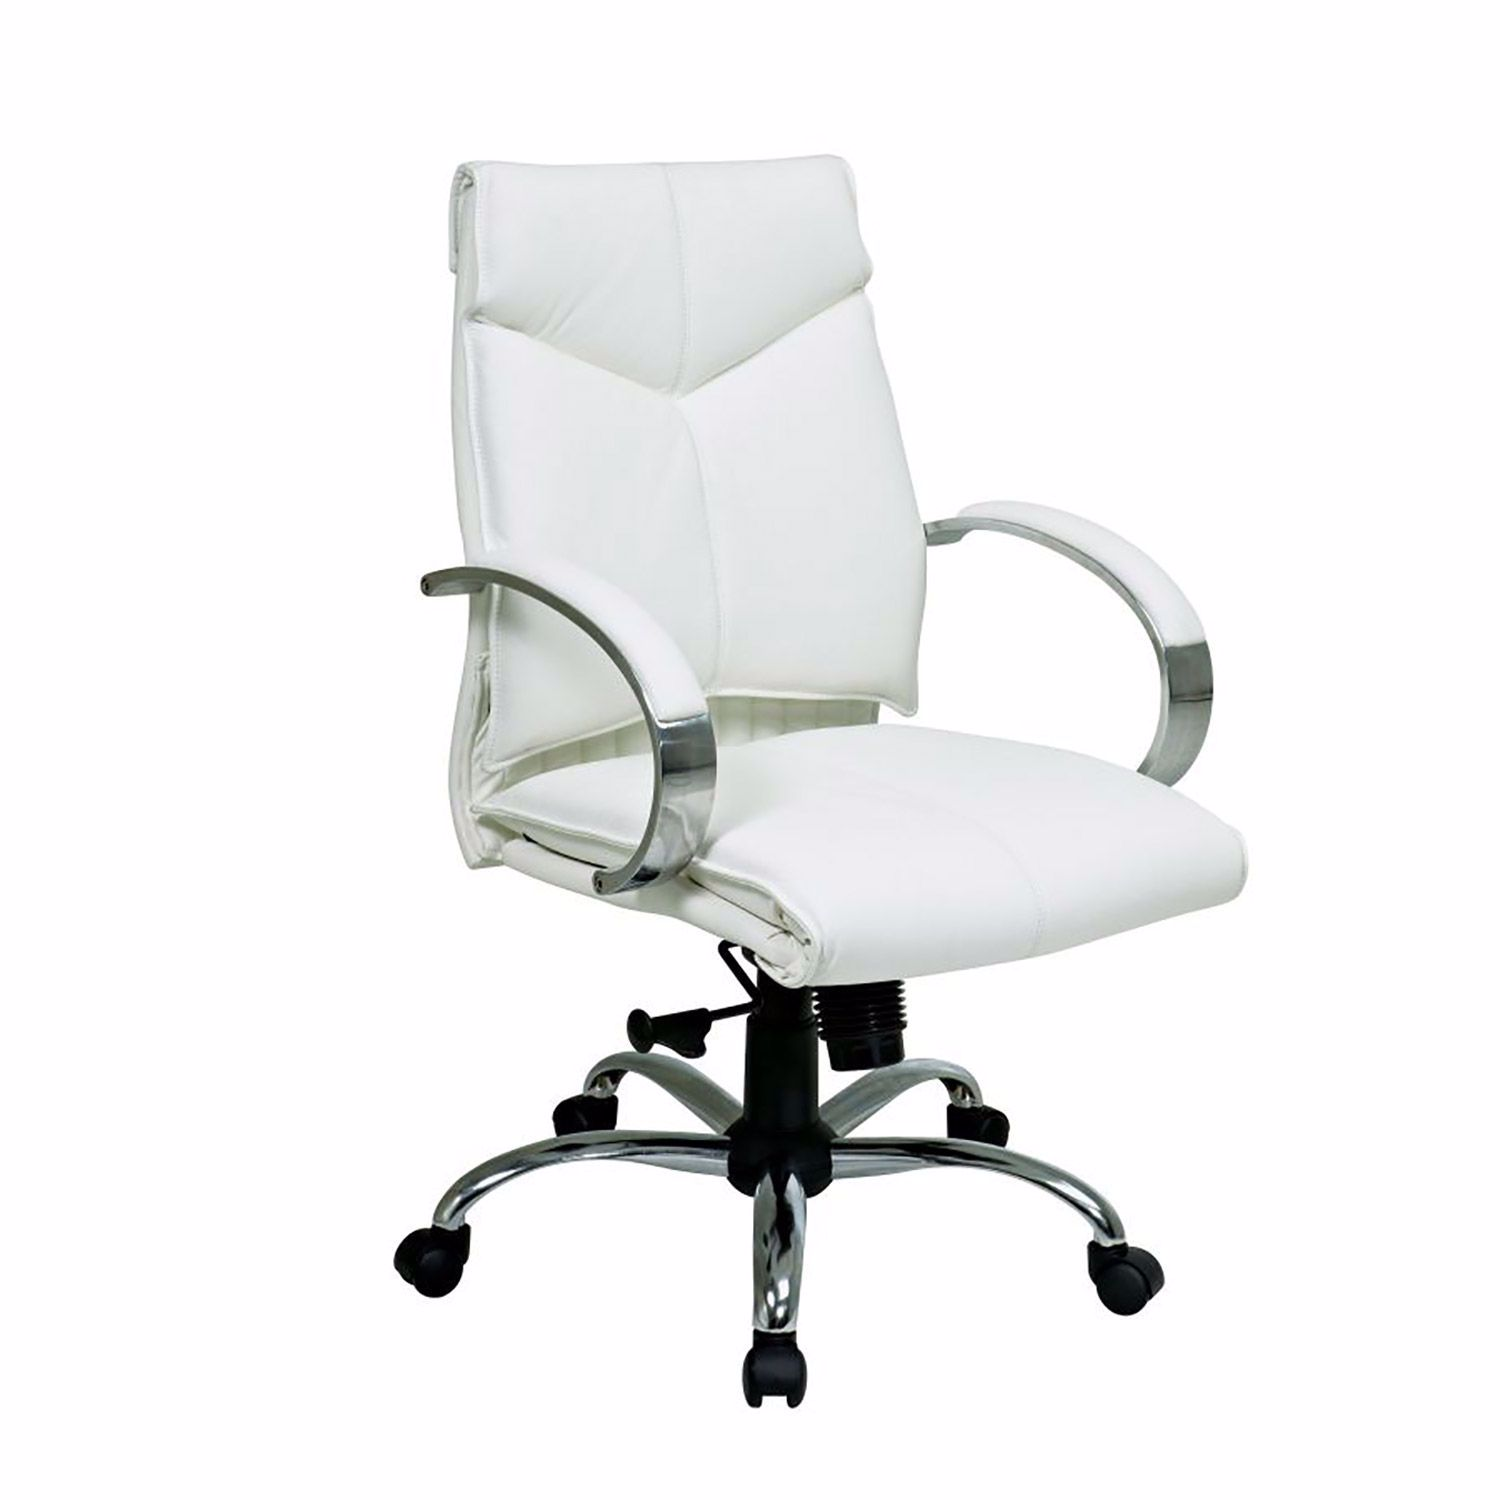 White Leather Office Chair 38  Office Star  AFW.com